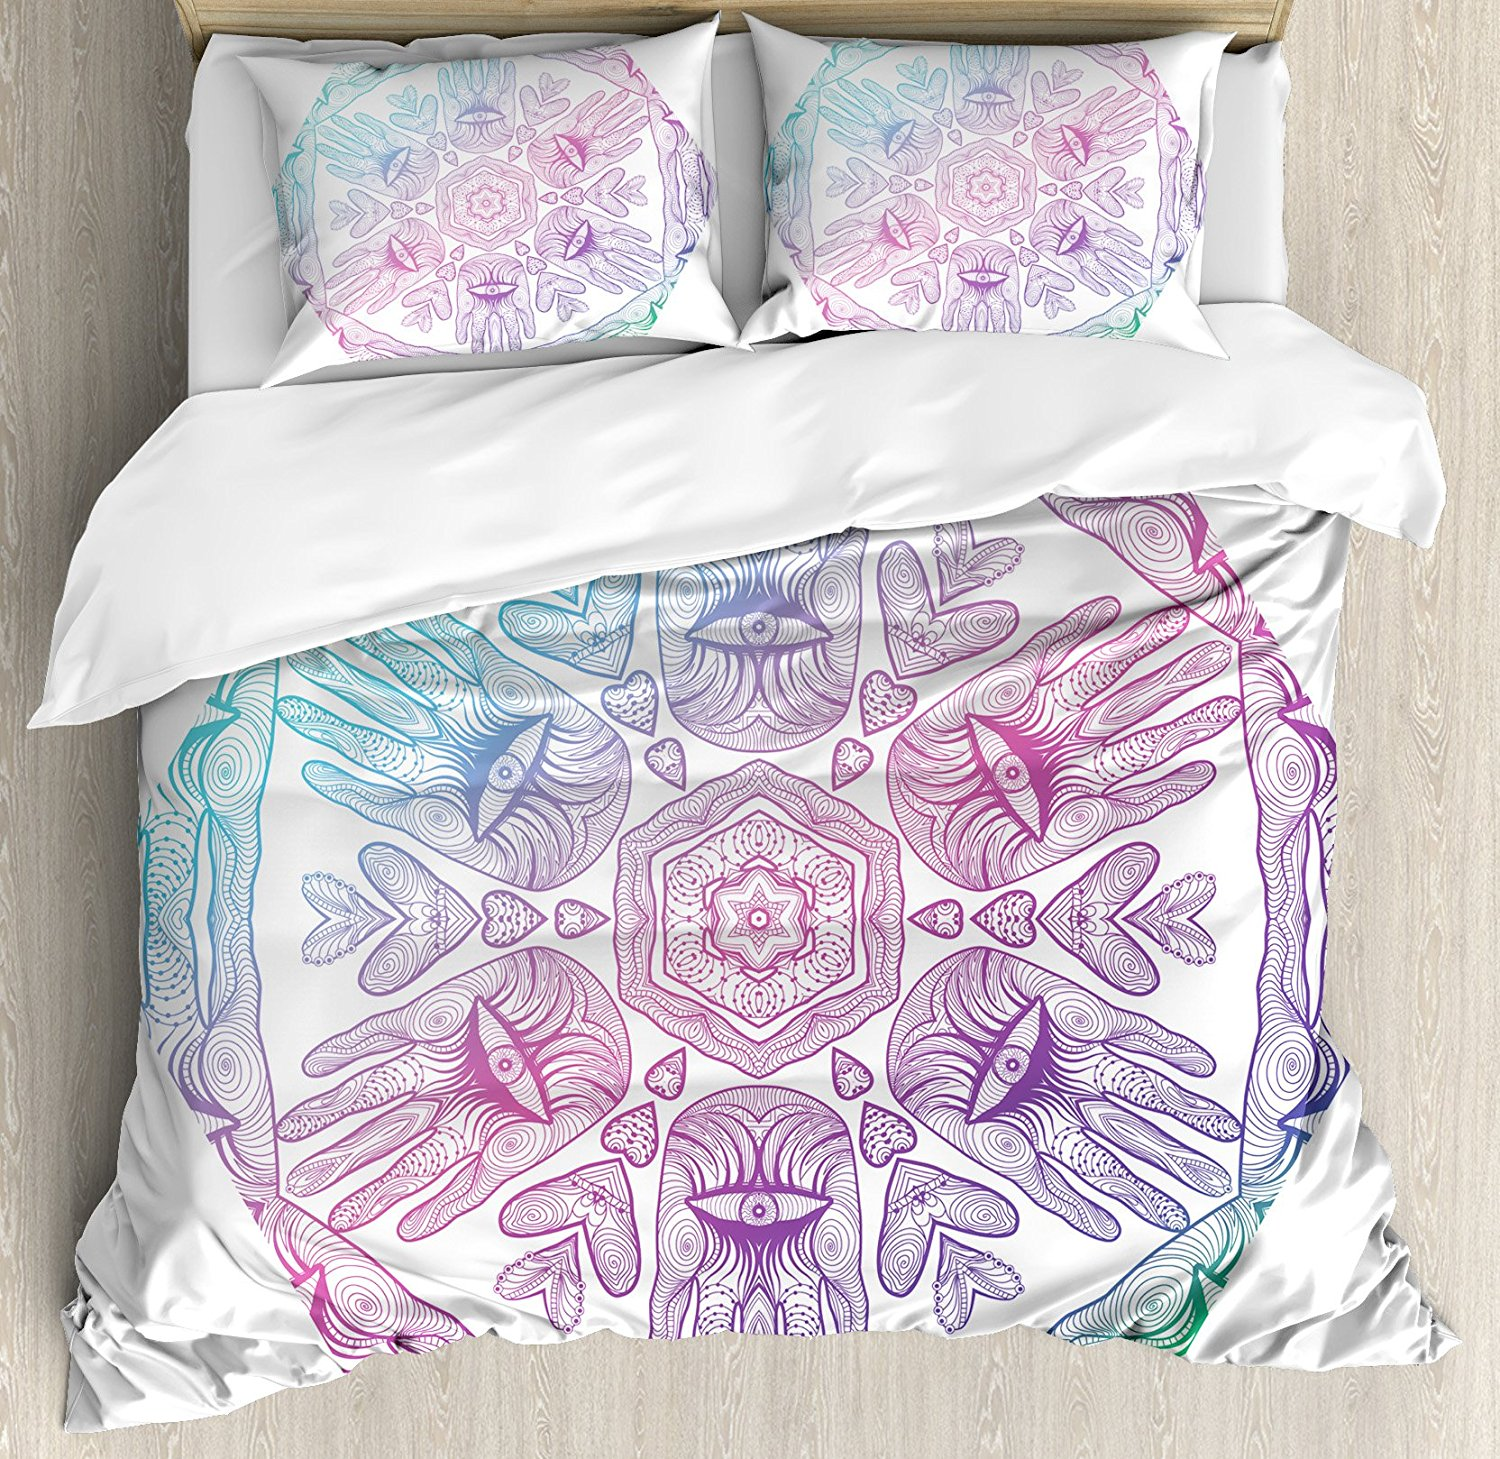 Hamsa Duvet Cover Set Evil Eye Themed Boho Ombre Color Pattern Hamsa Hands Asian Cosmos Mystical Mandala Bedding Set Blue Purple